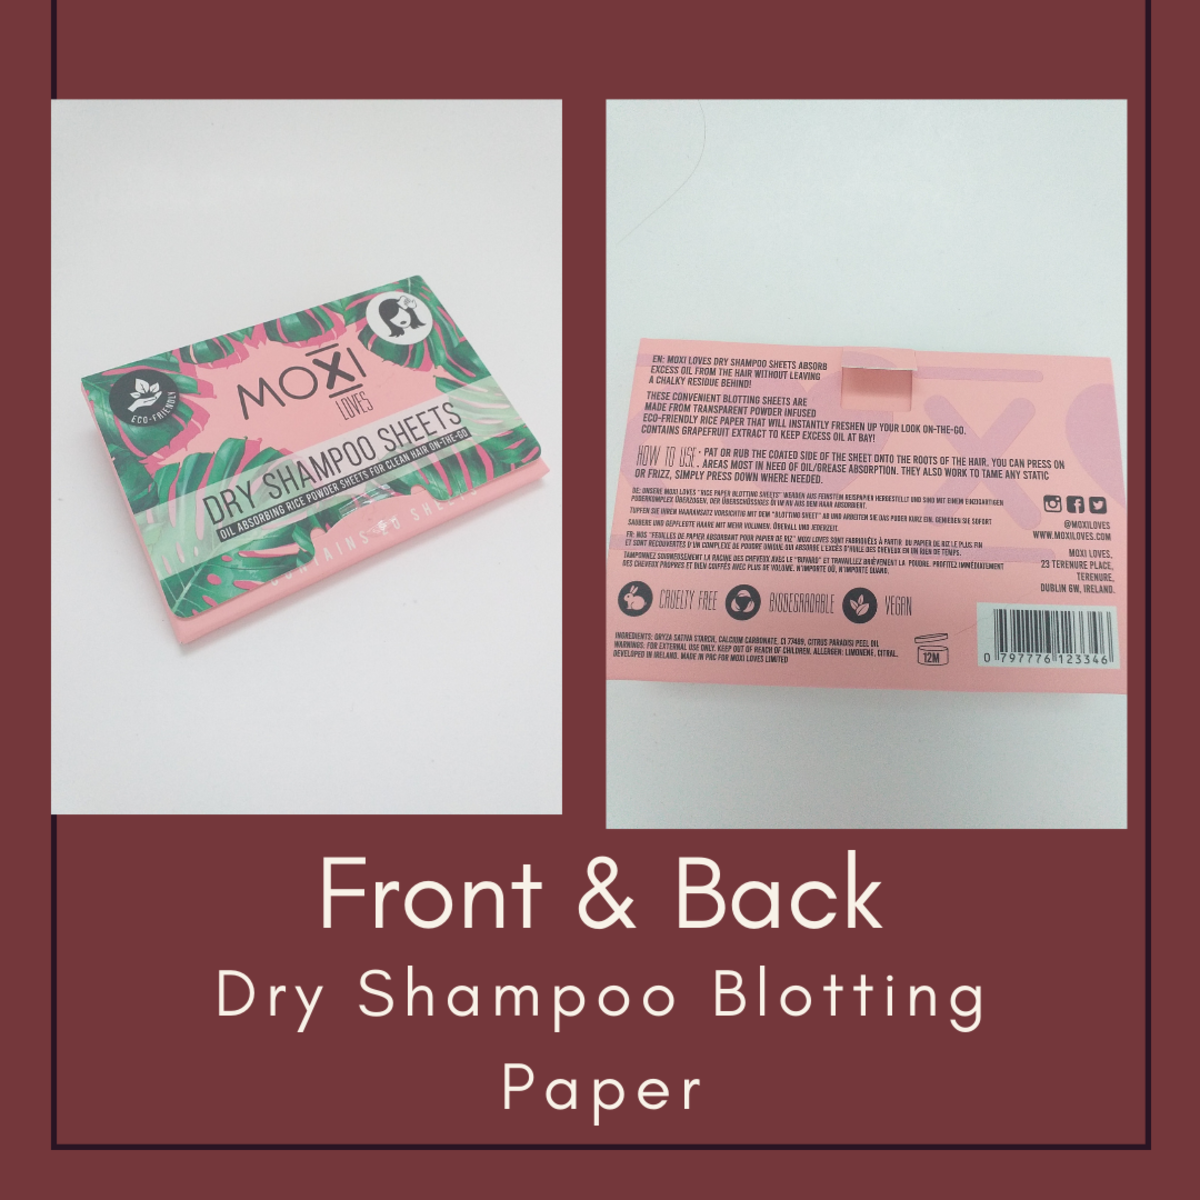 Most brands use cardboard packaging for their blotting paper as it is more eco friendly.